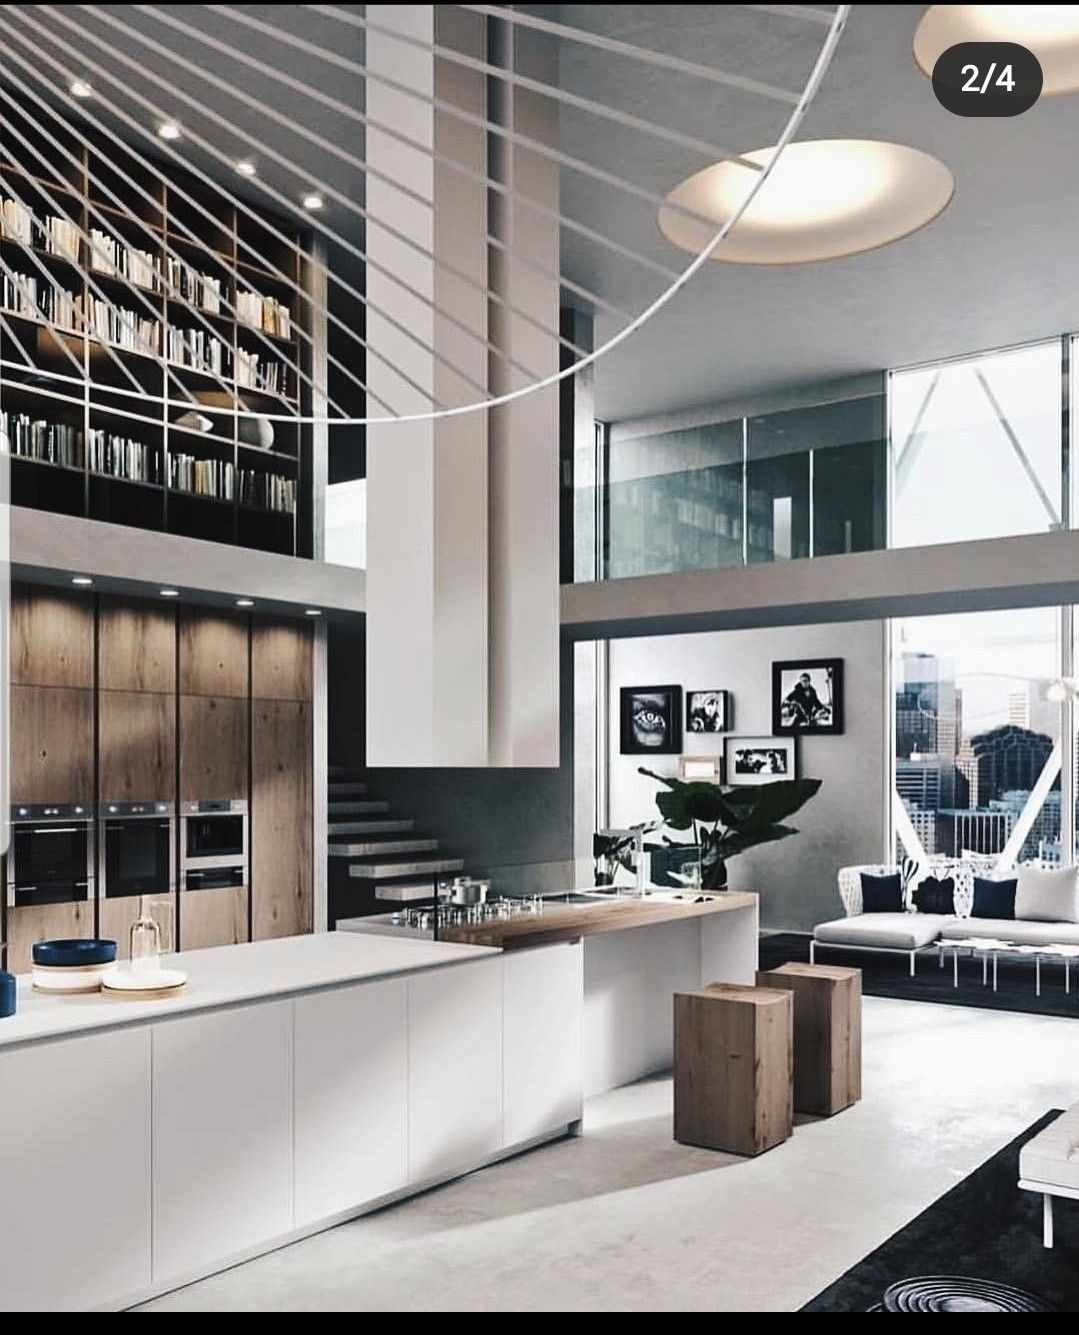 Pin By Lodsigner On Cuisine Kitchen In 2020 Modern Kitchen Design Interior Design Kitchen Home